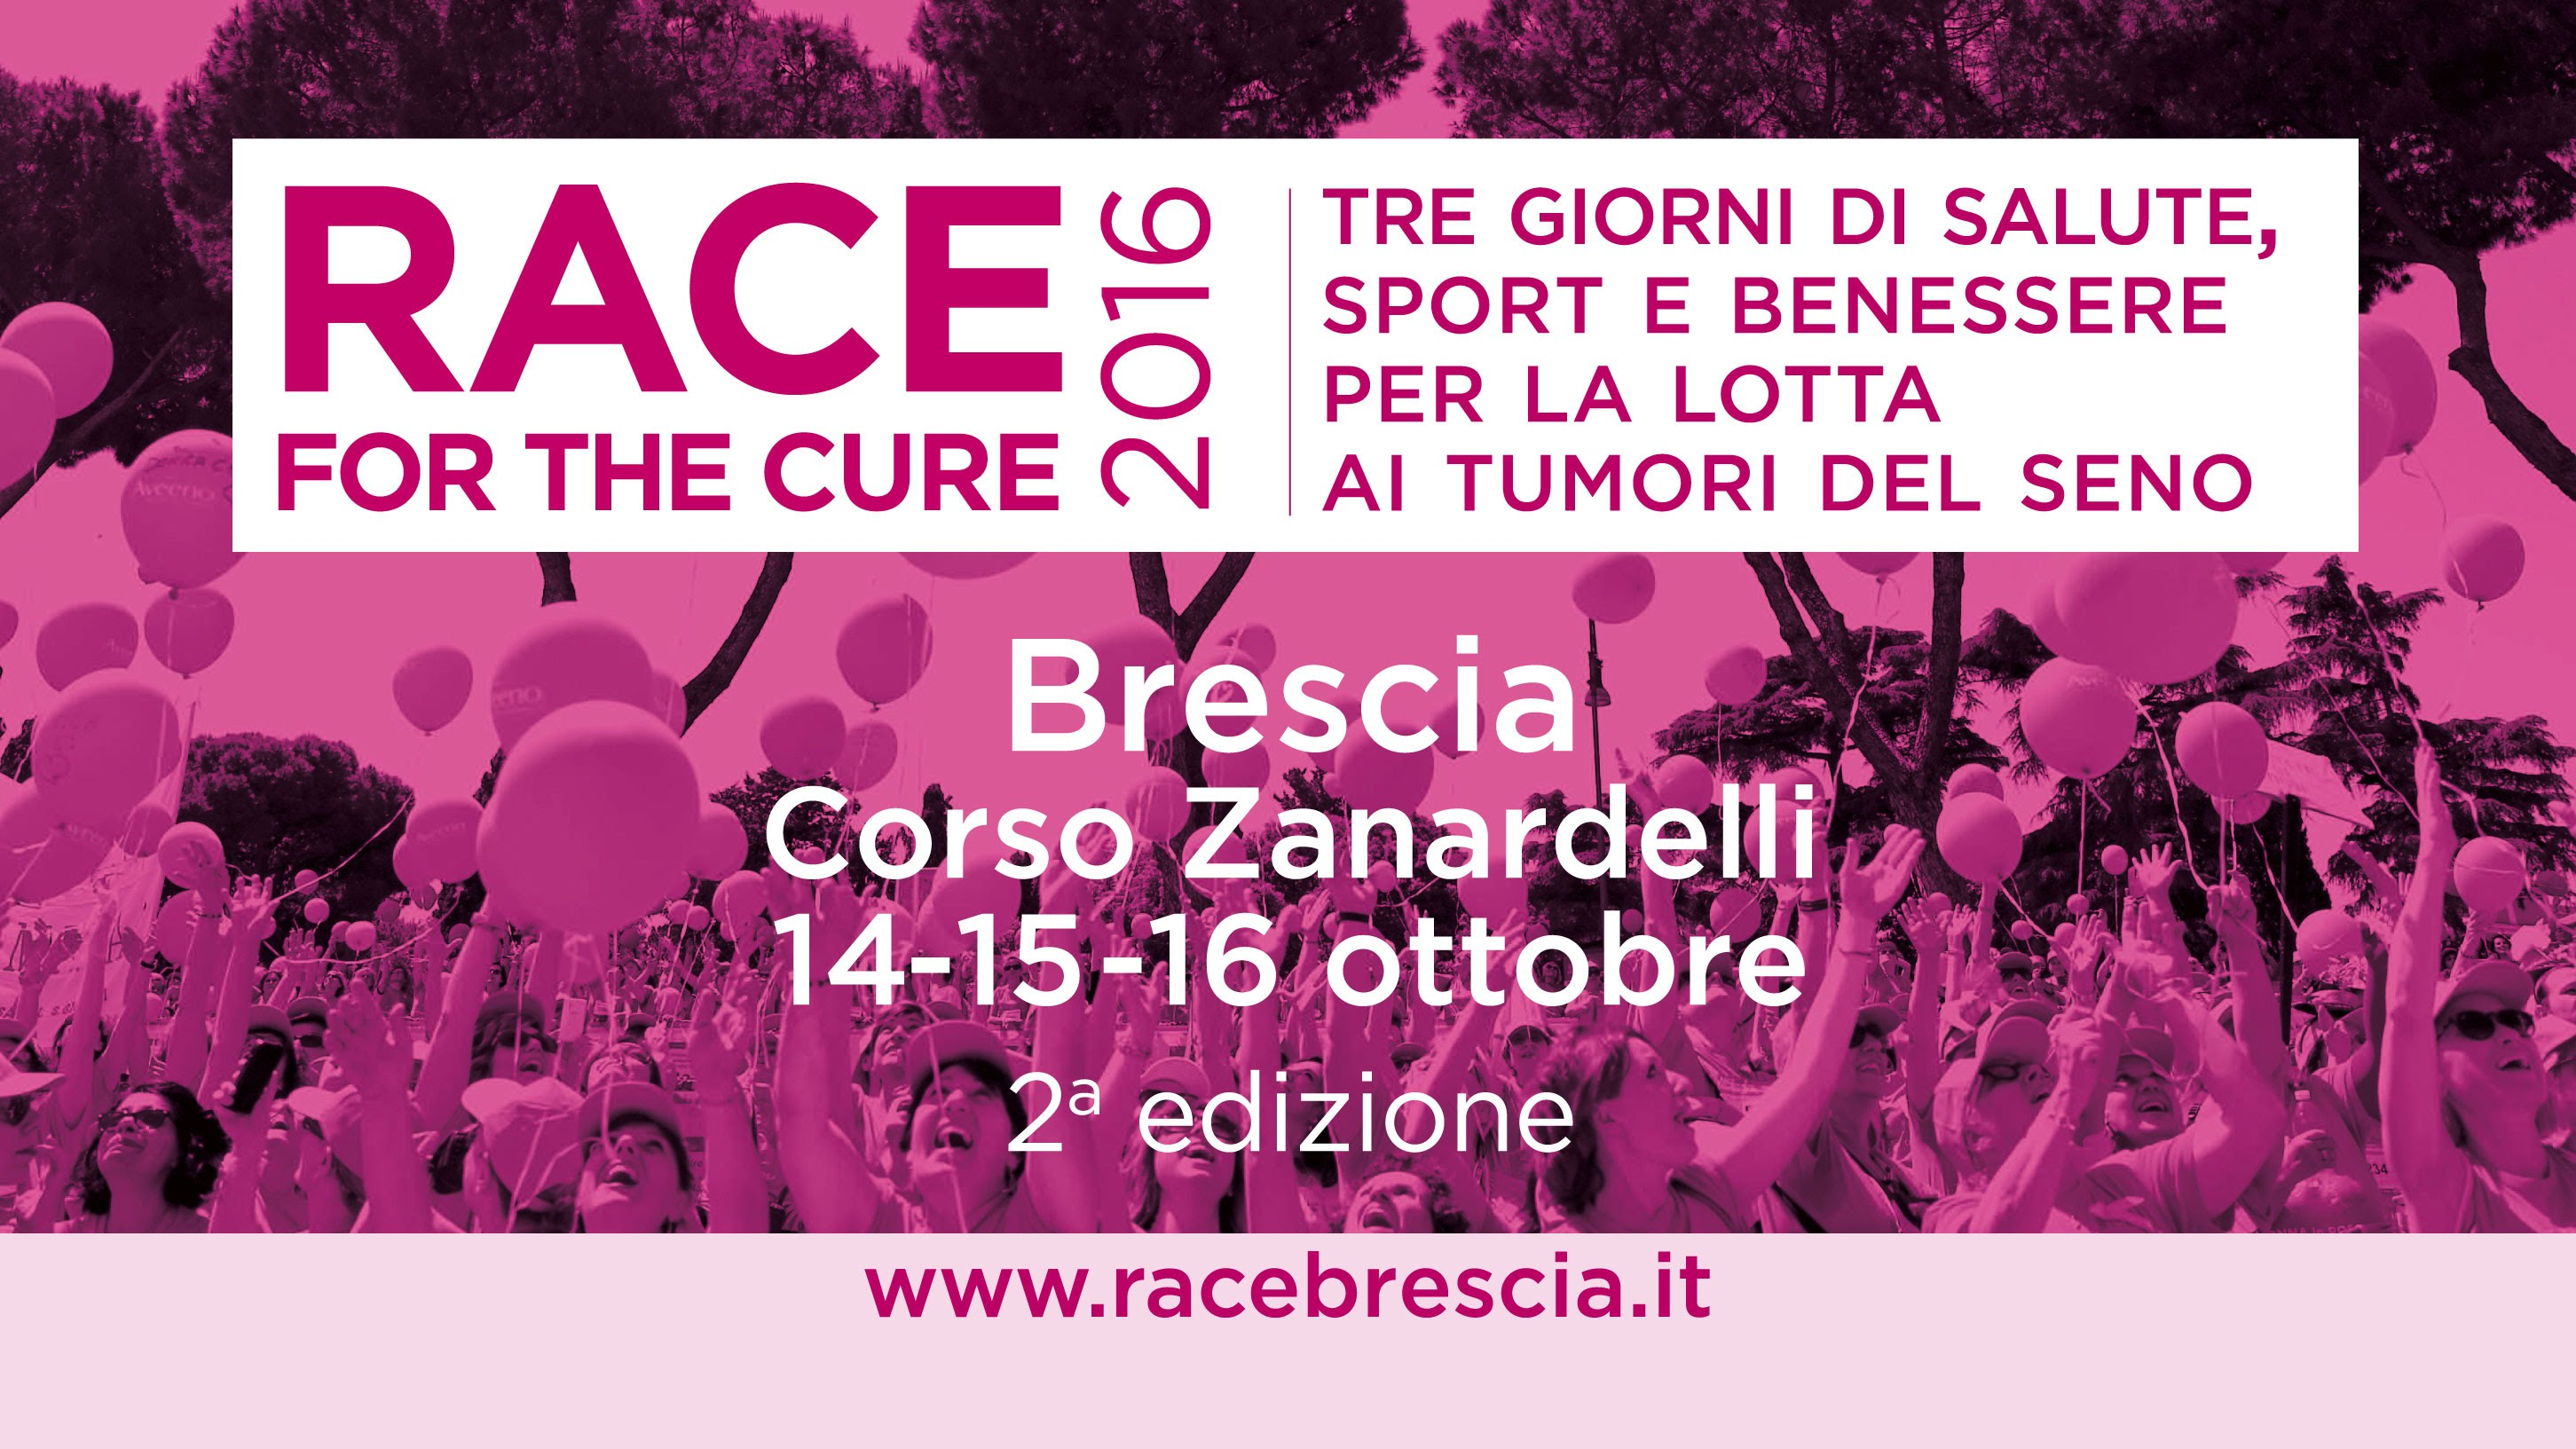 Race for the cure 2016 (2)